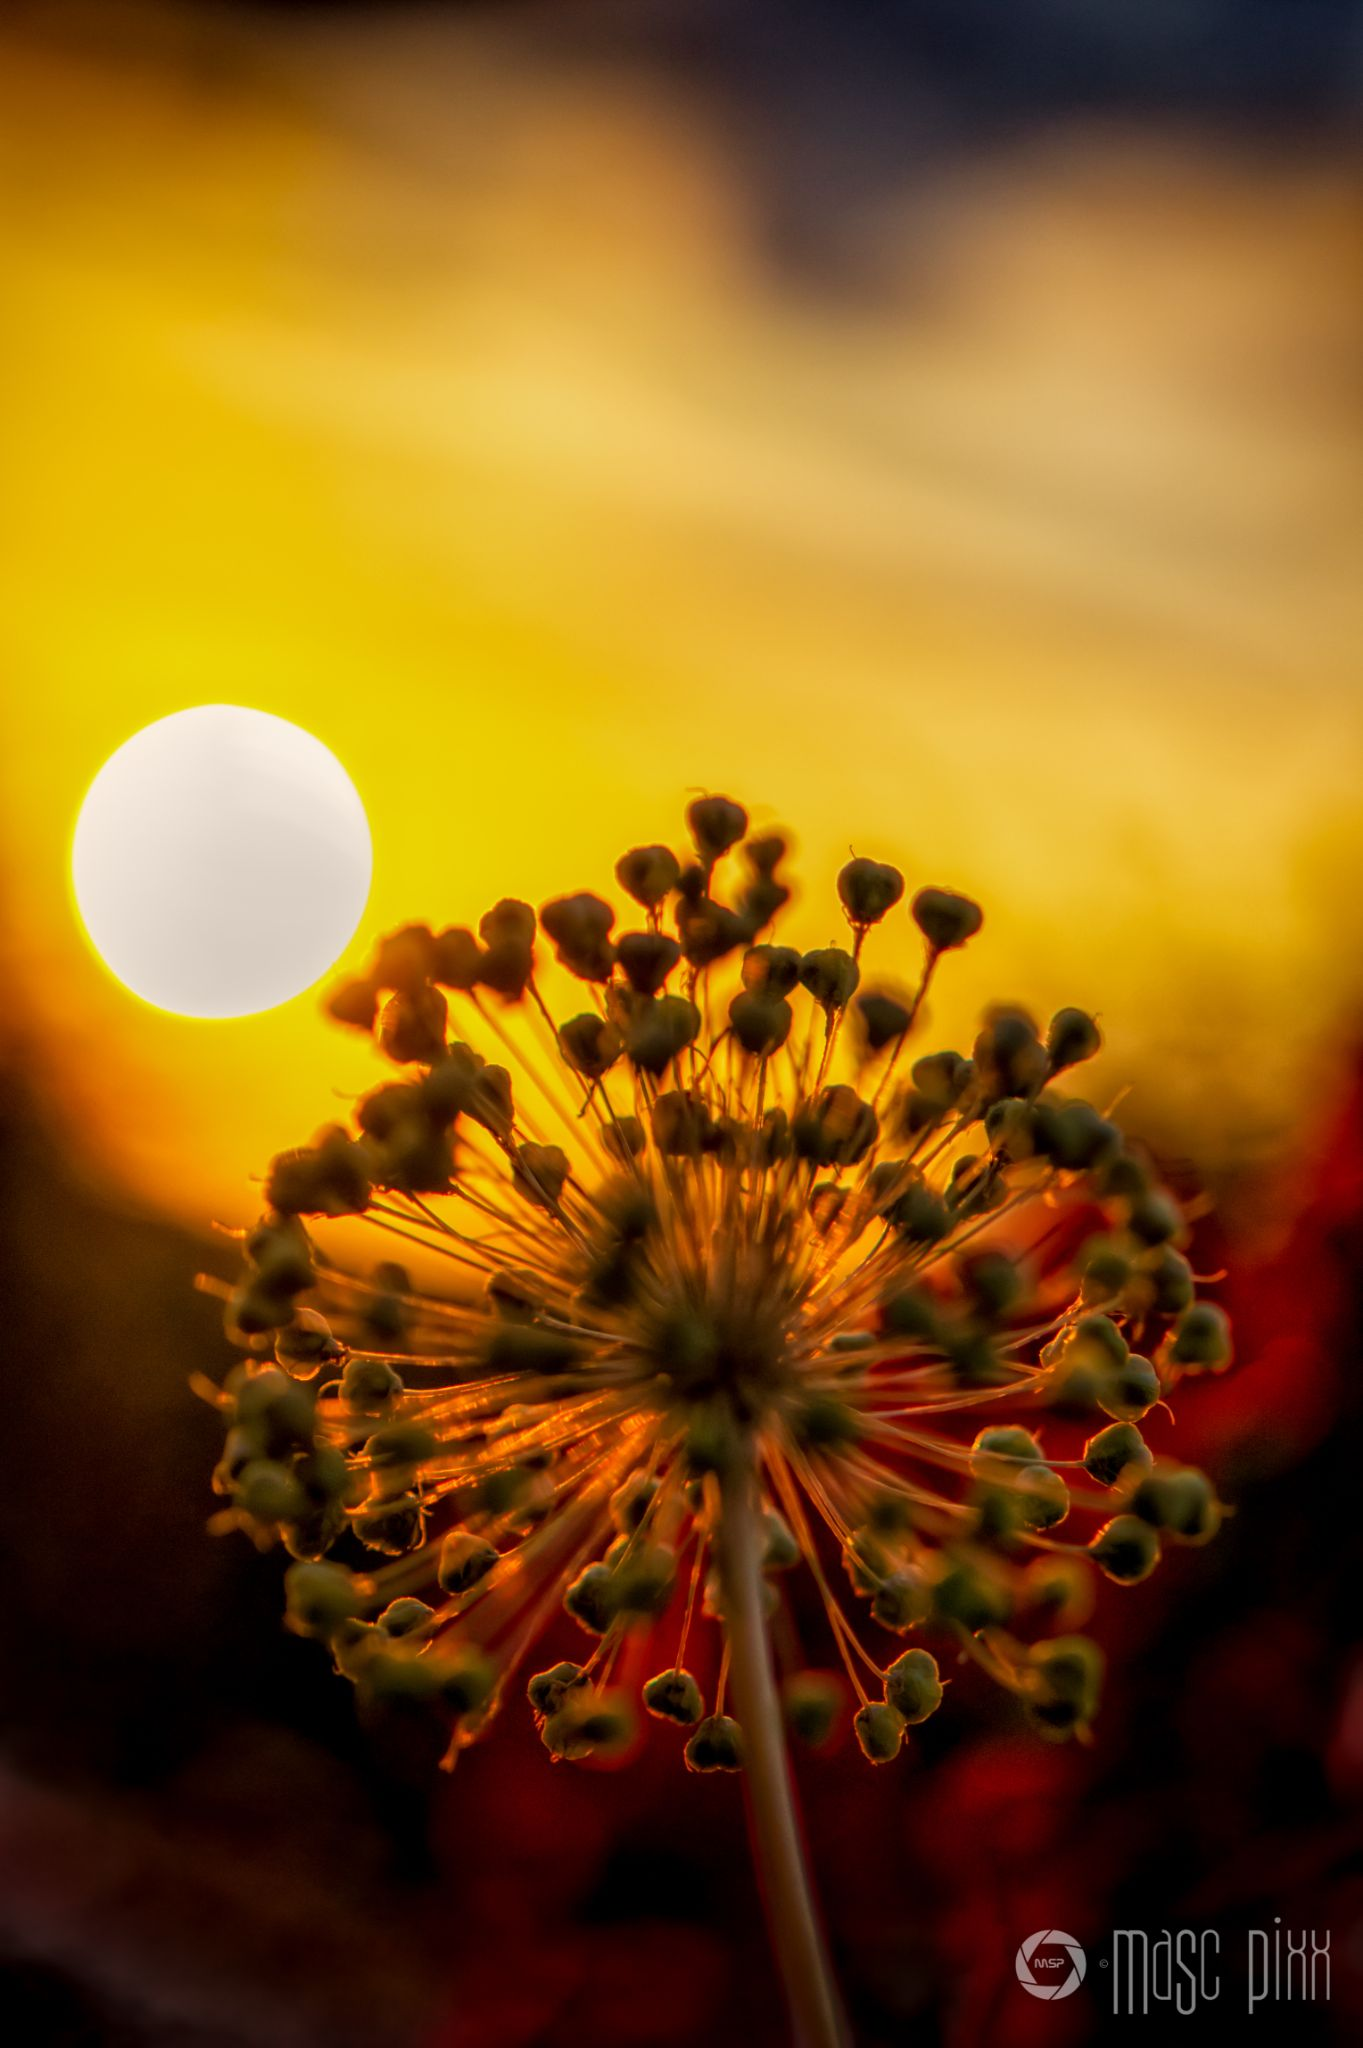 Flower in the Sunset by Martin Schunack